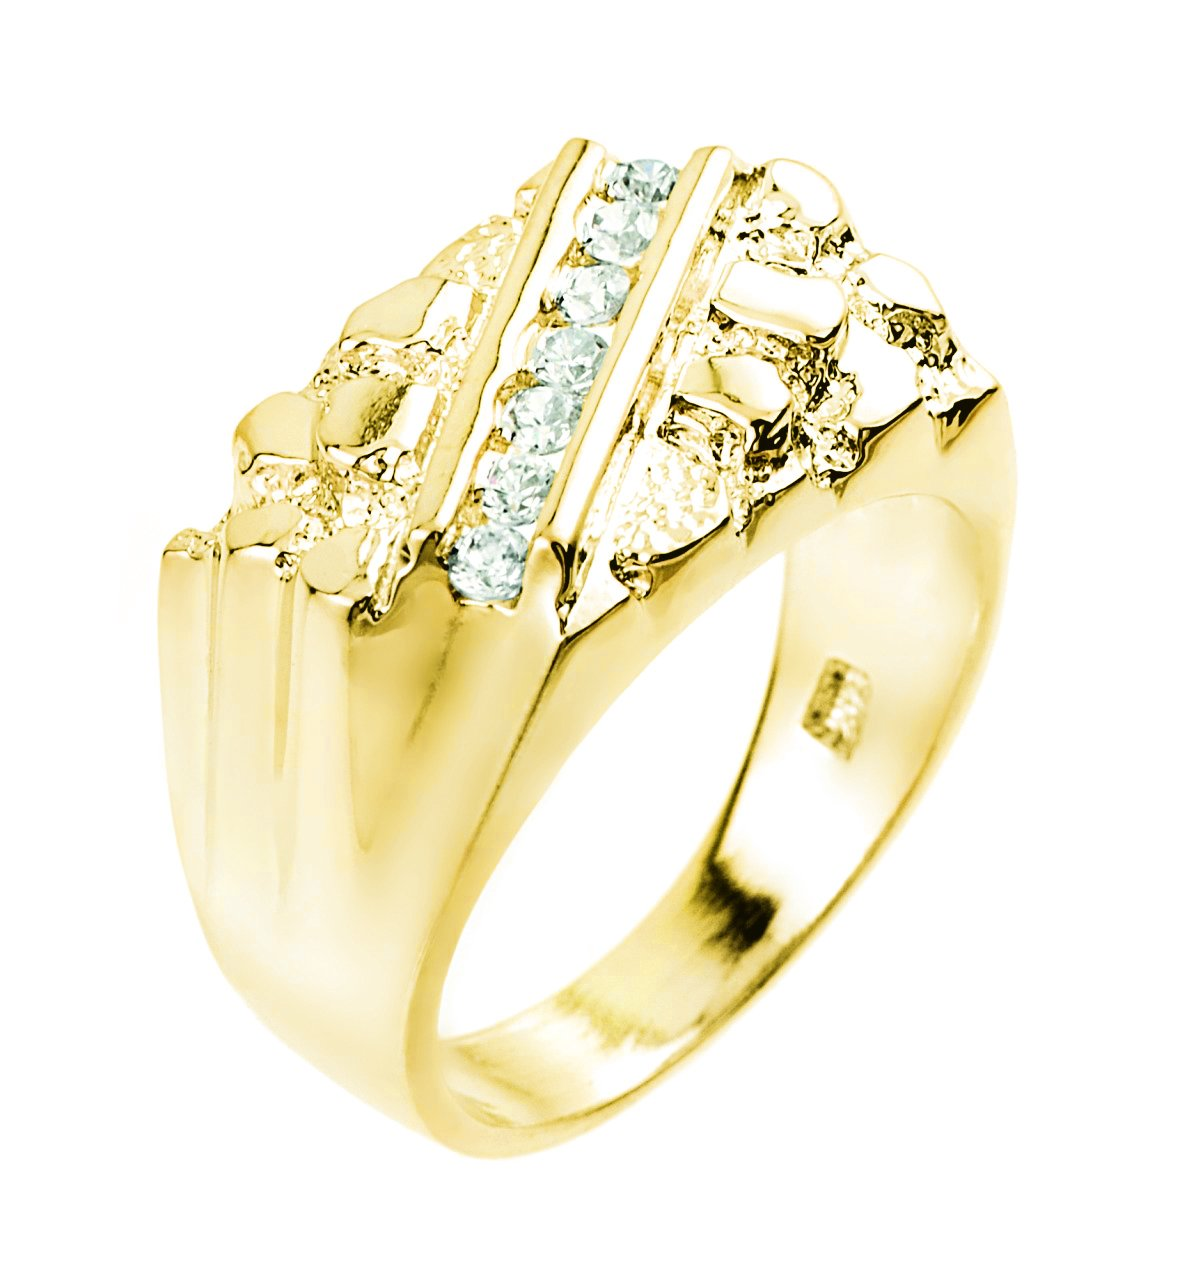 Fine 14k Yellow Gold Nugget Ring with Cubic Zirconias (Size 16)